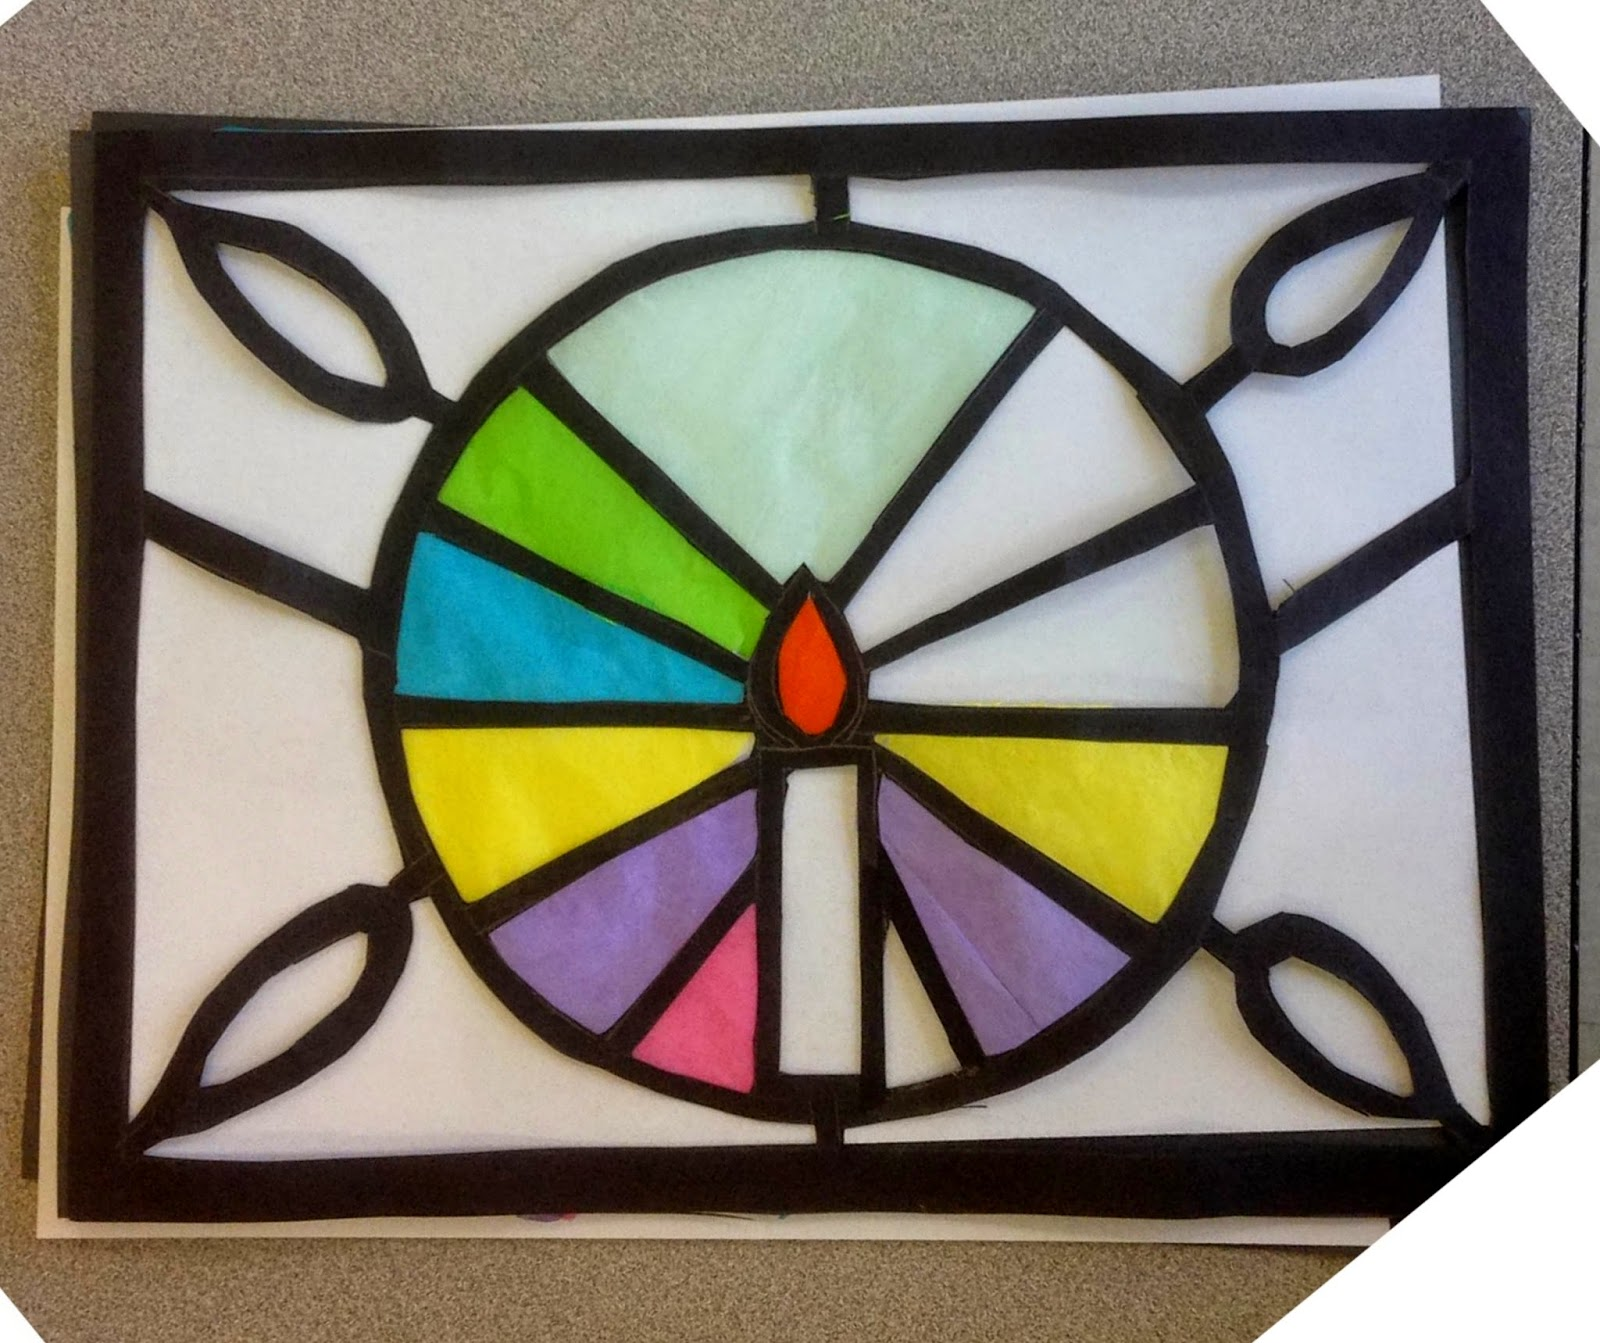 Art class ideas stained glass with tissue paper for Stained glass window craft with tissue paper